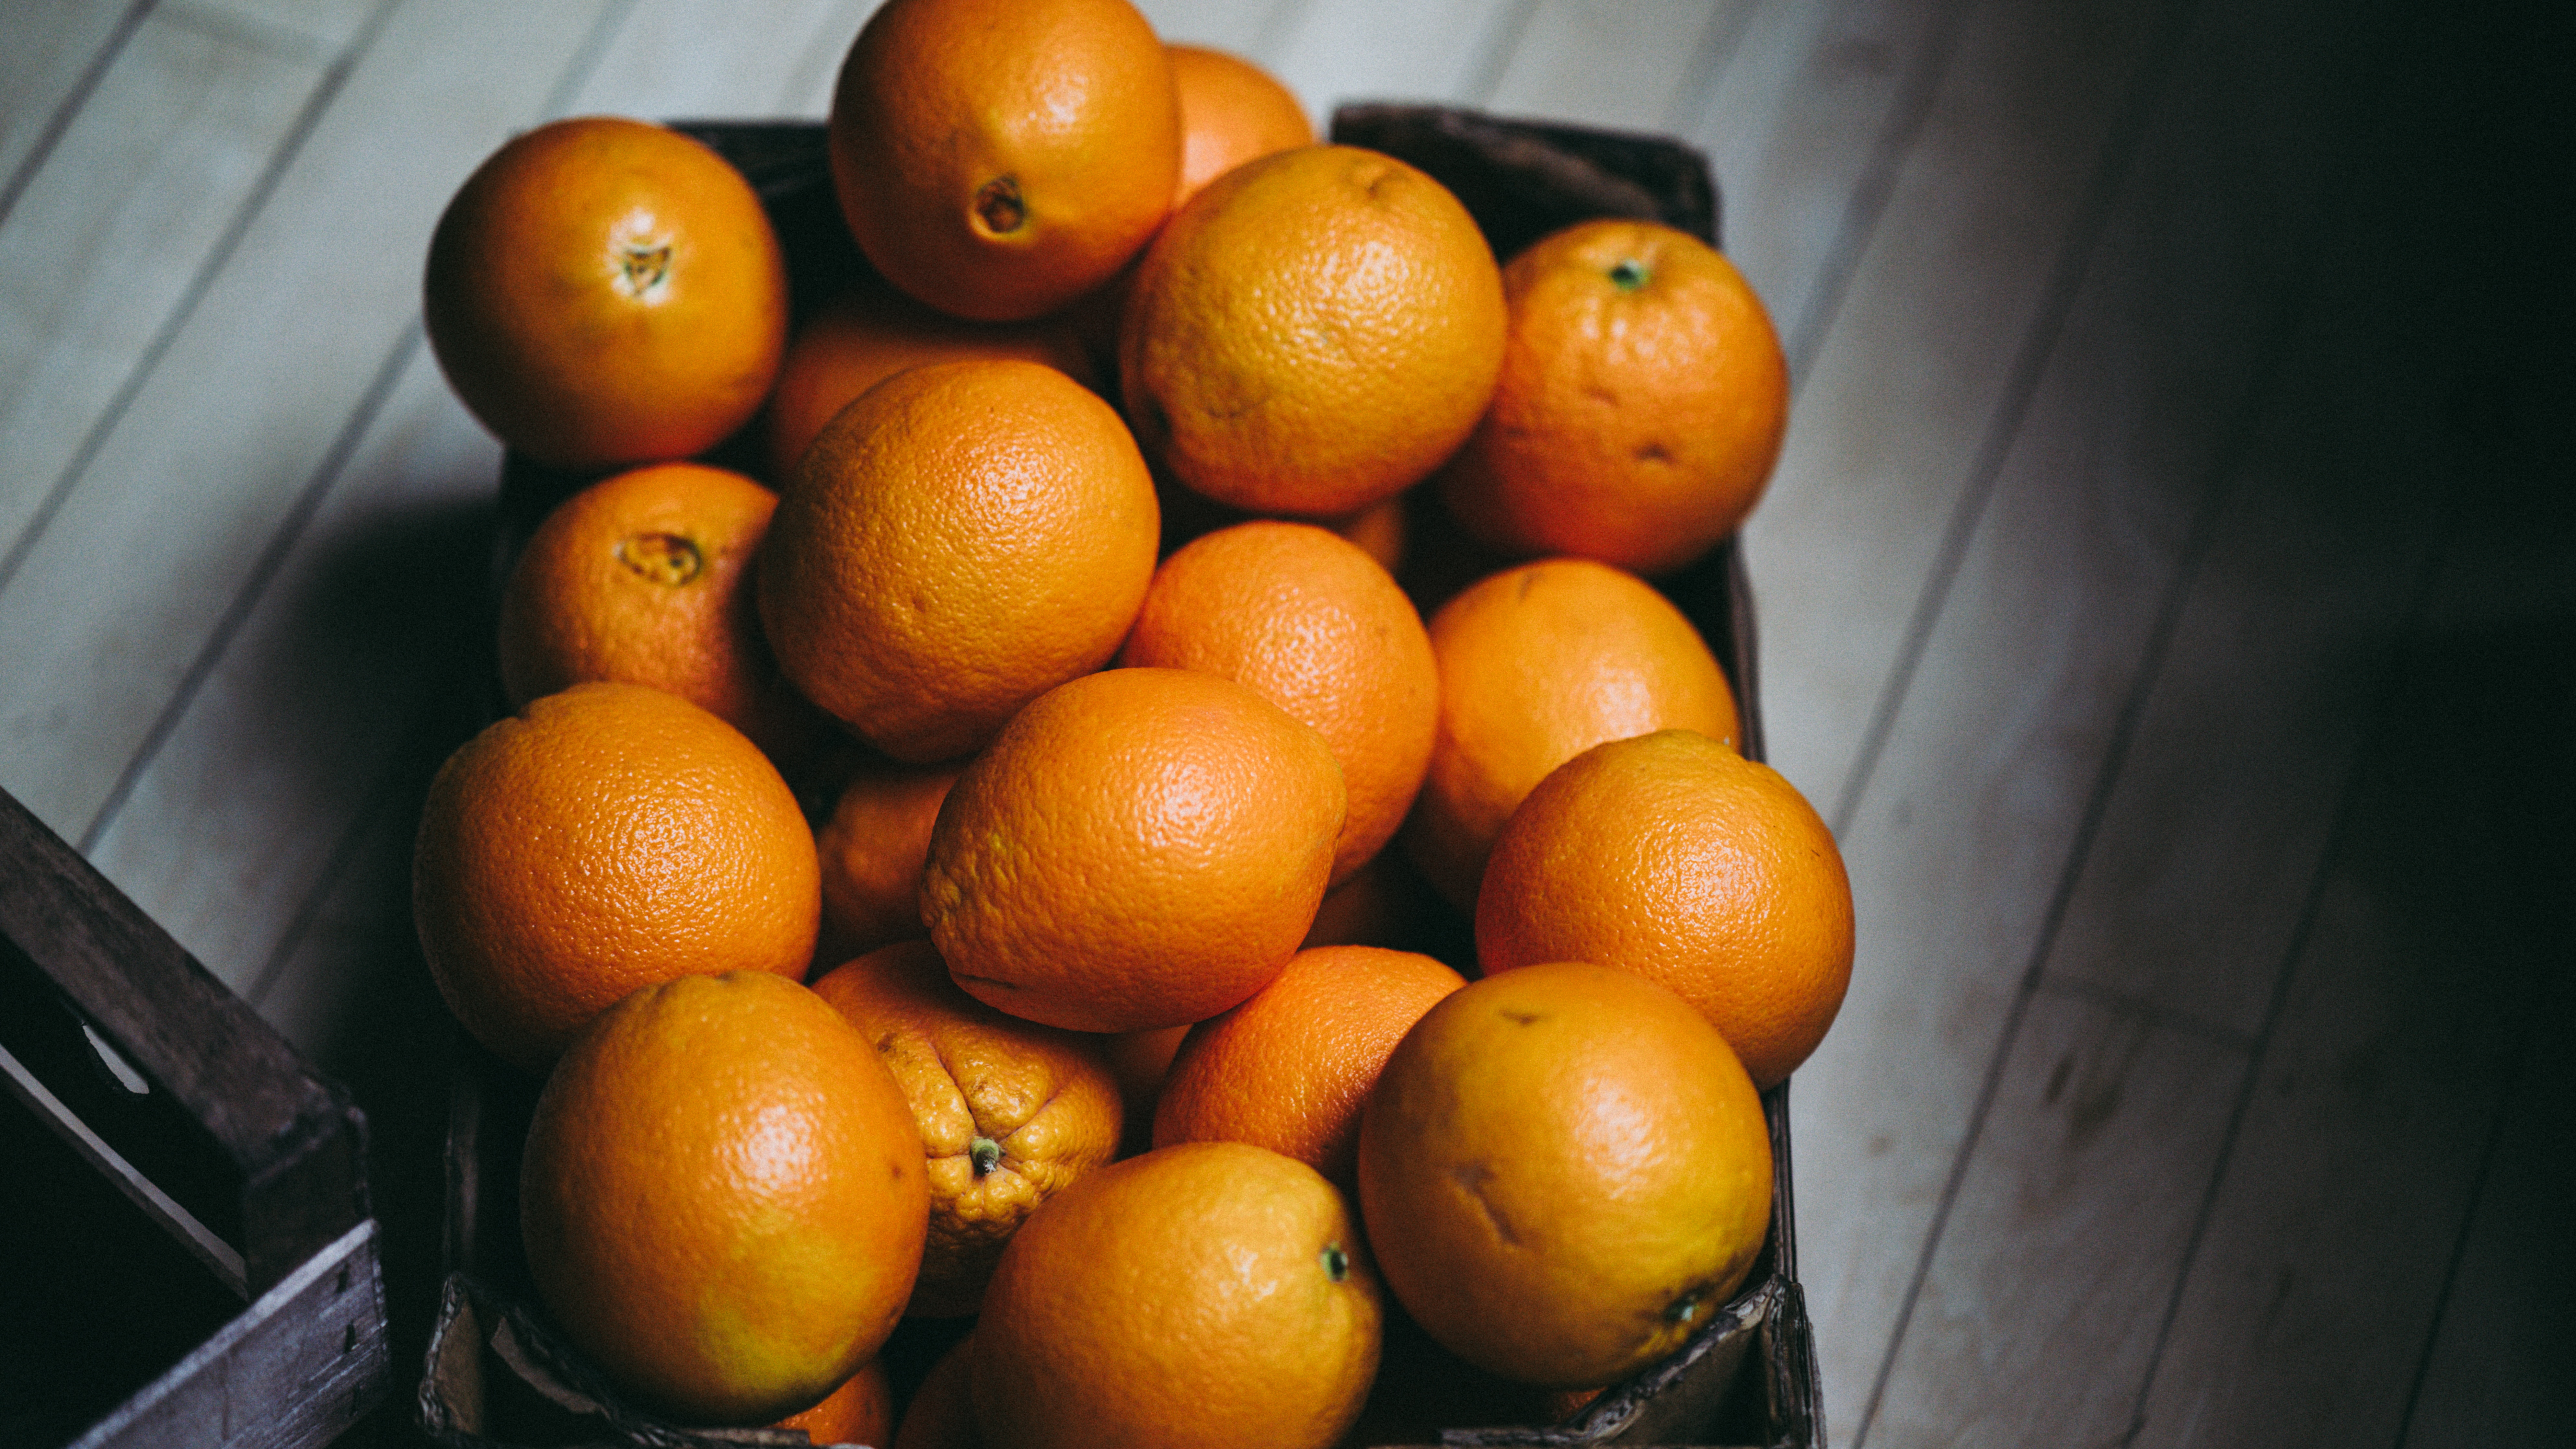 116246 download wallpaper Food, Citruses, Citrus, Ripe, Box, Fruits, Oranges screensavers and pictures for free